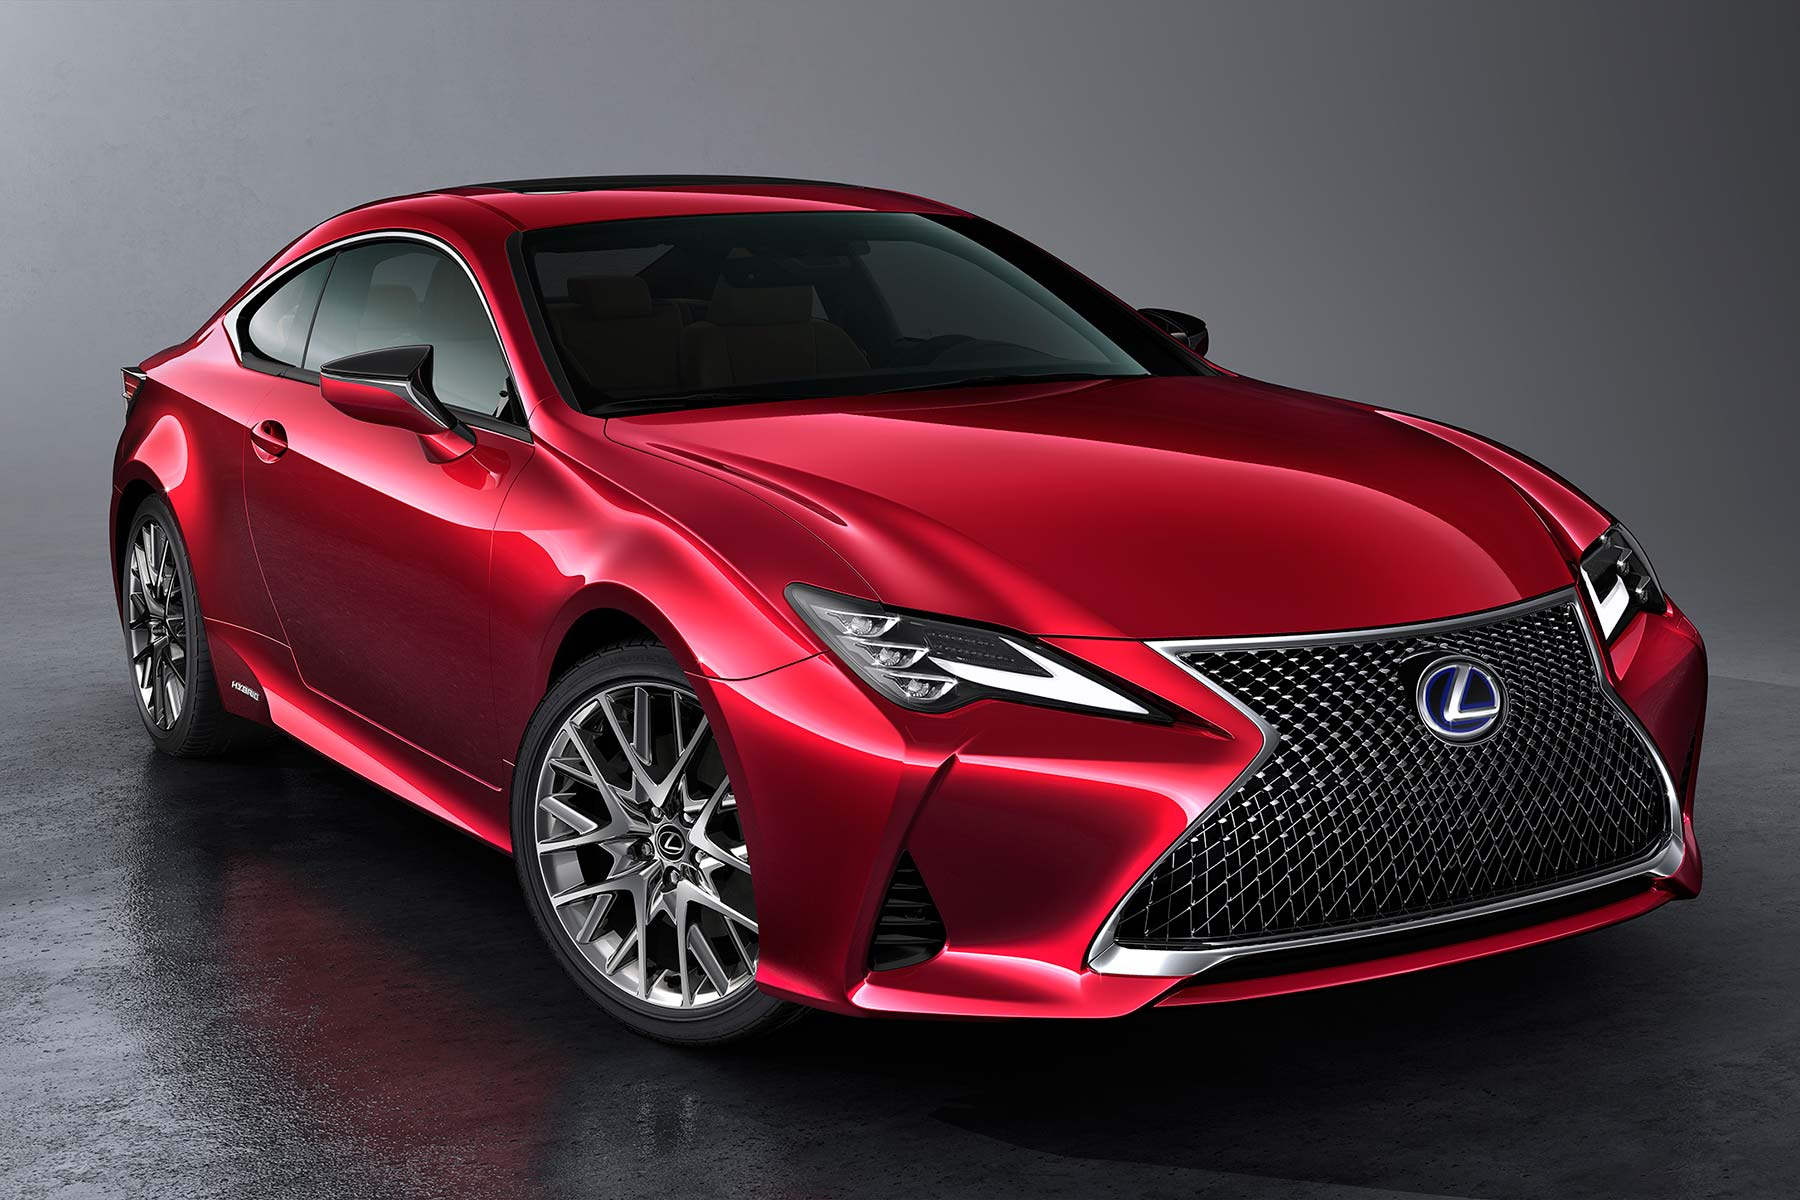 Lexus RC sports coupe updated for 2019